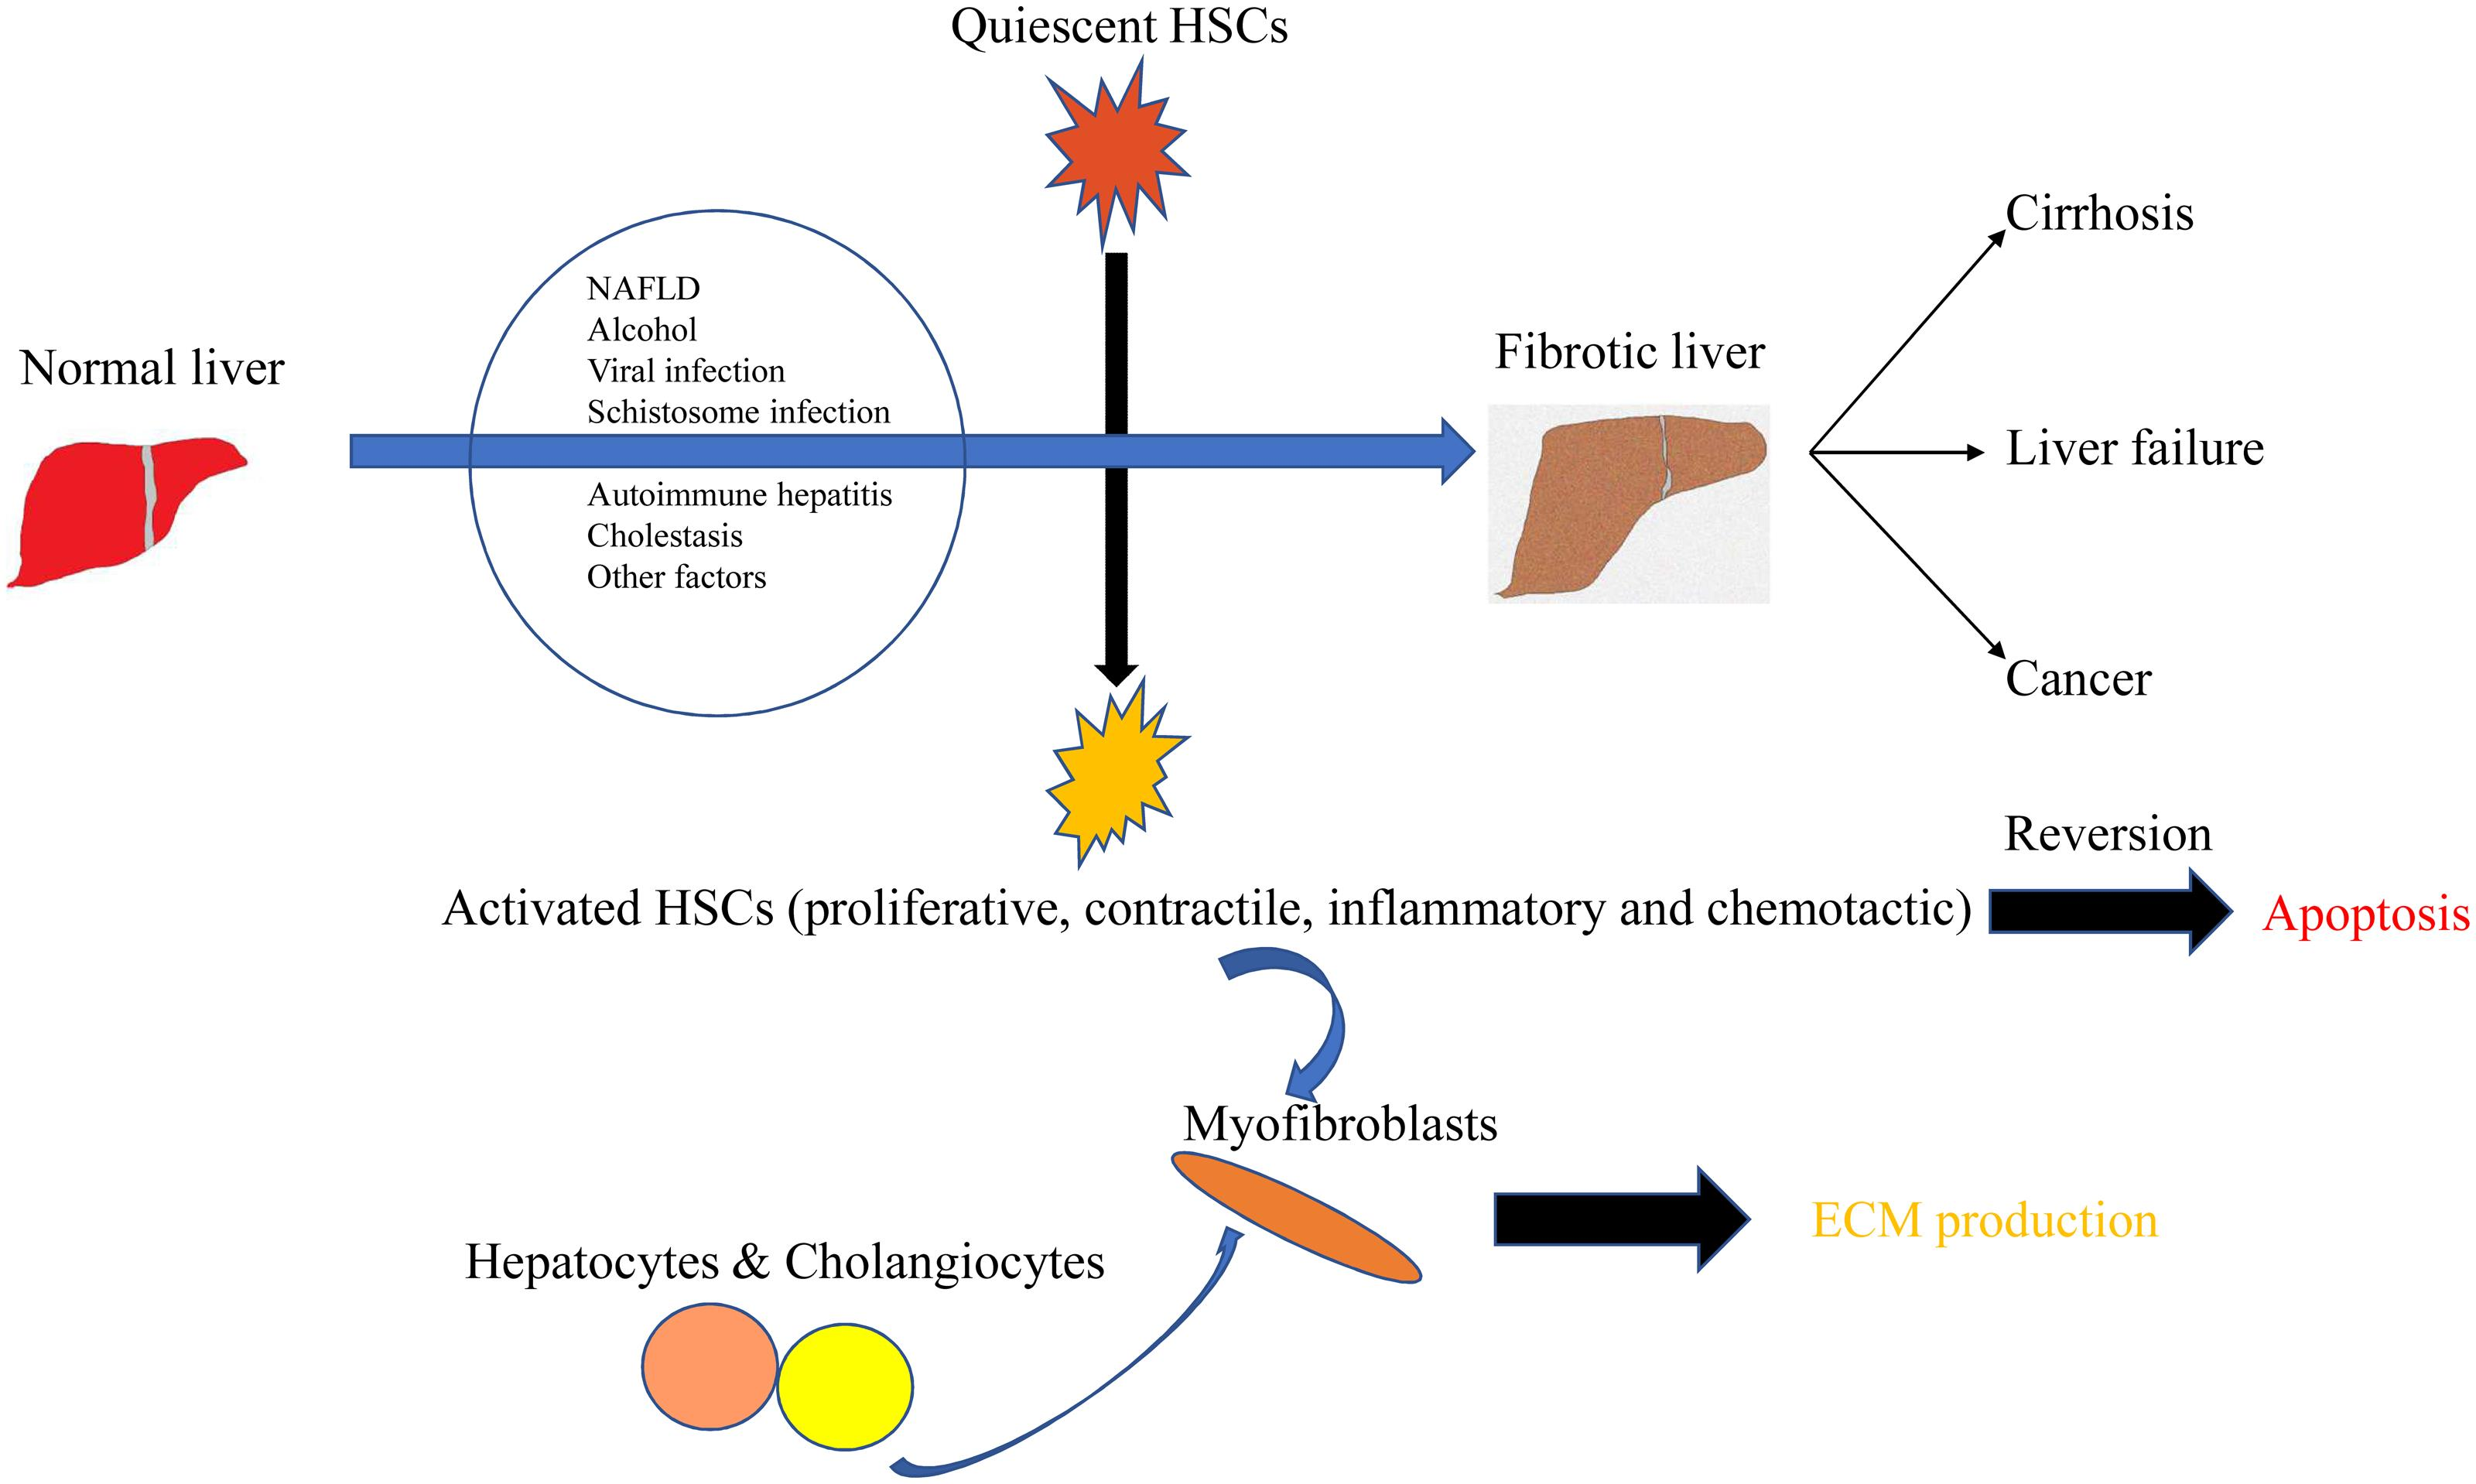 HSCs are the key cells in the progression and regression of liver fibrosis.